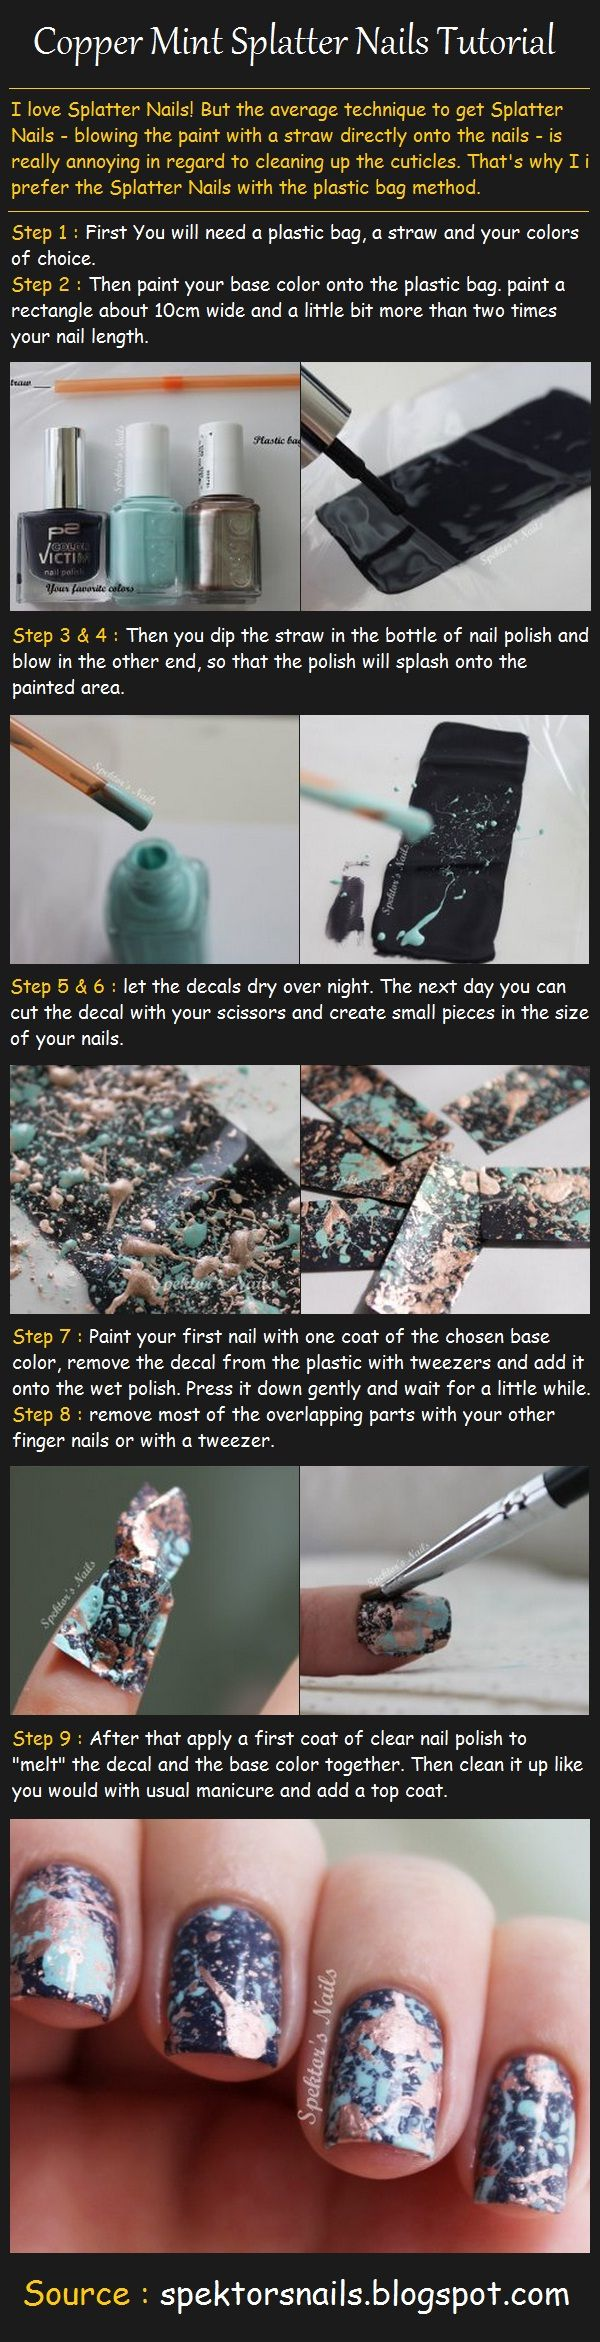 Copper Mint Splatter Nails Tutorial: Plastic Bags, Nails Art, Copper Mint, Mint Splatter, Nails Polish, Splatter Nails, Nails Decals, Diy'S Nails, Nails Tutorials